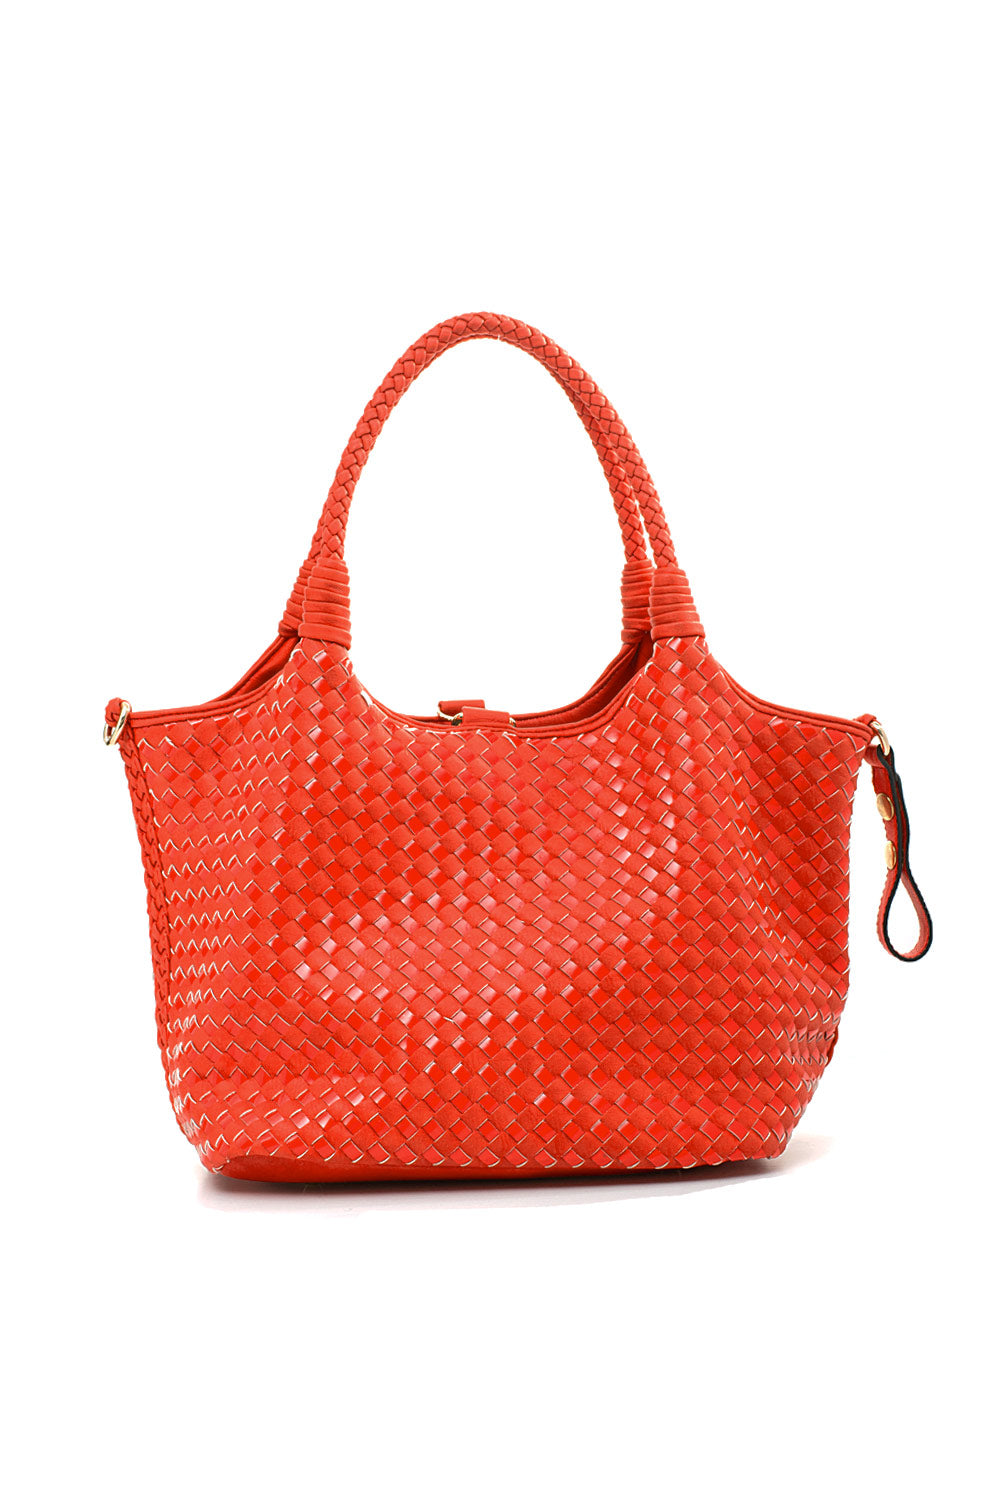 Type 1 Basket Weave Handbag